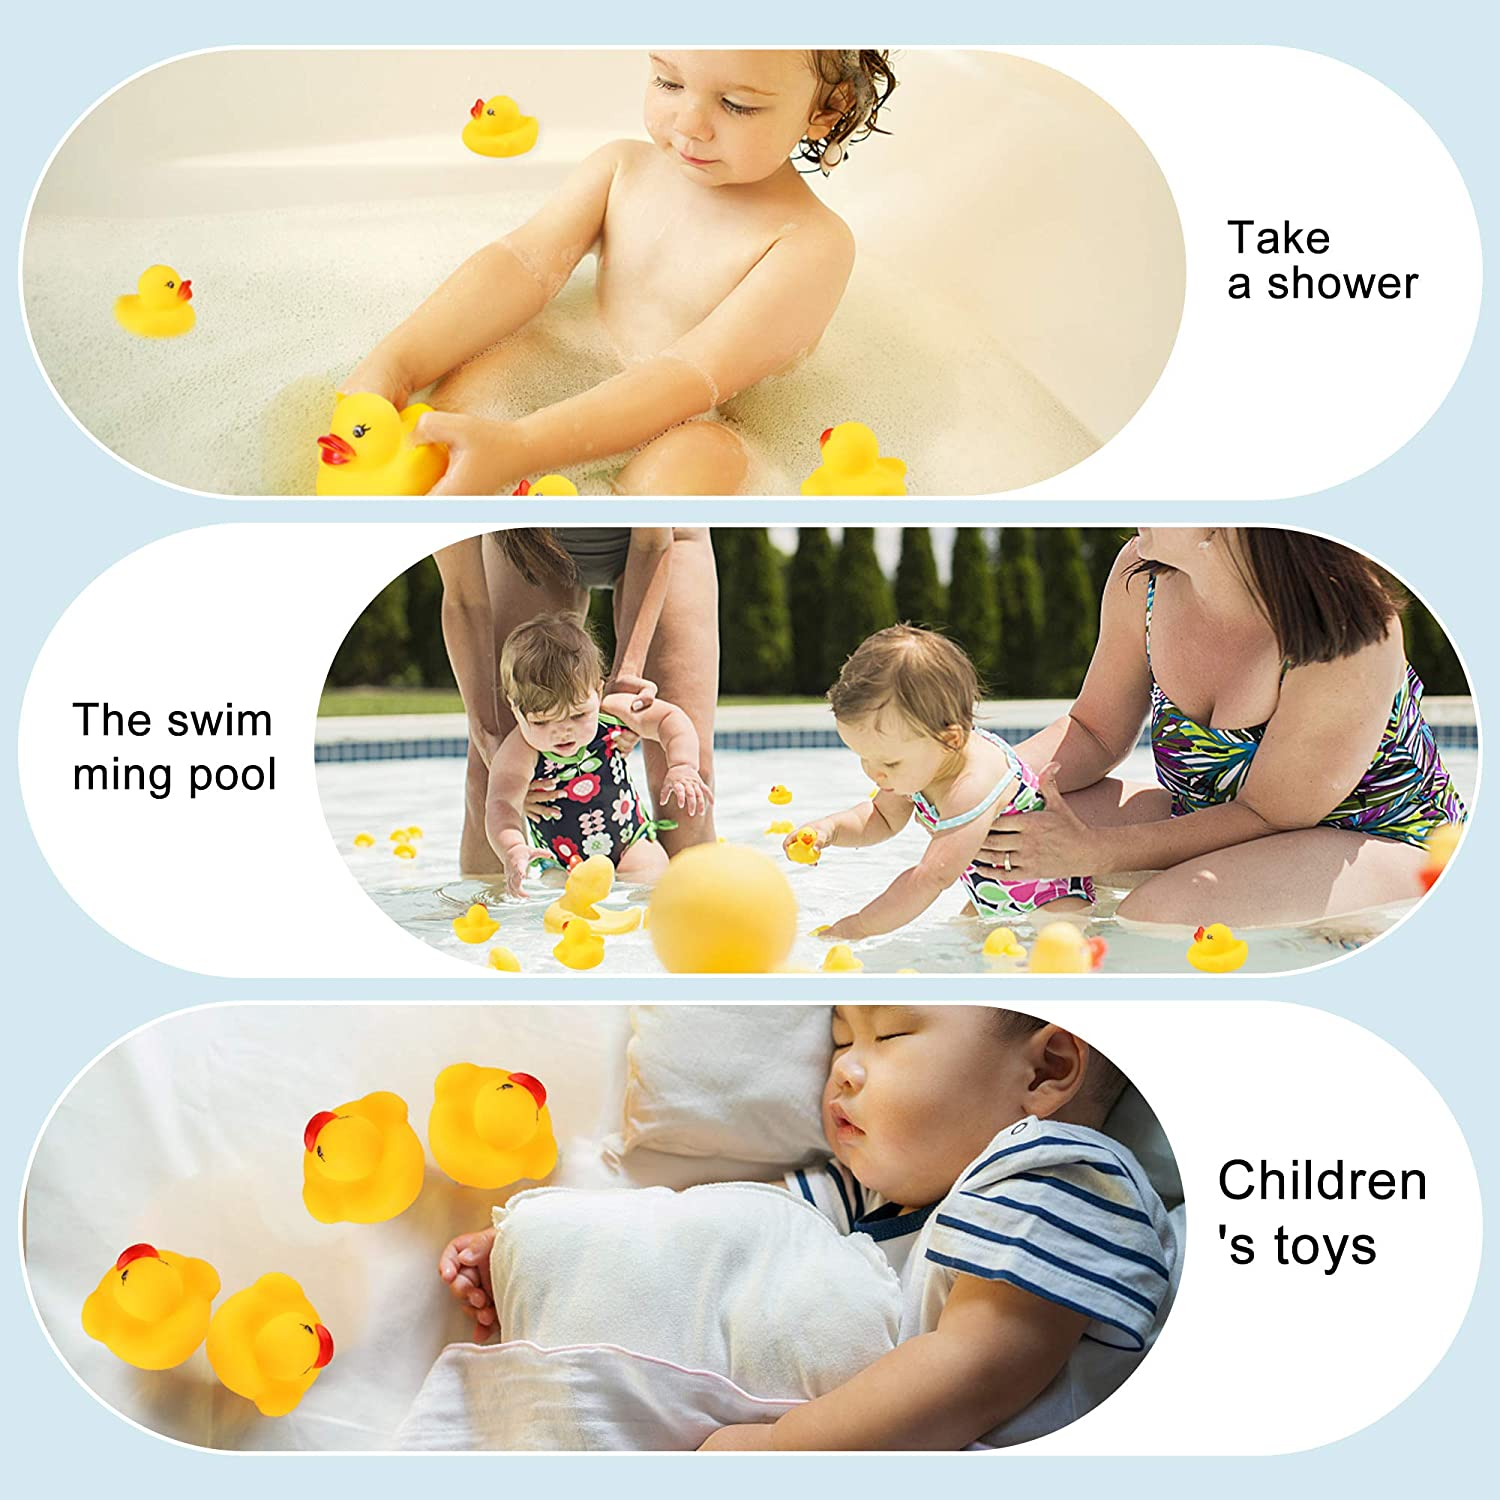 Xiran an Excellent Children Bath tub Toy Great Choice of Gift for Gatherings and Parties 50 pcs Mini Yellow Rubber Duck